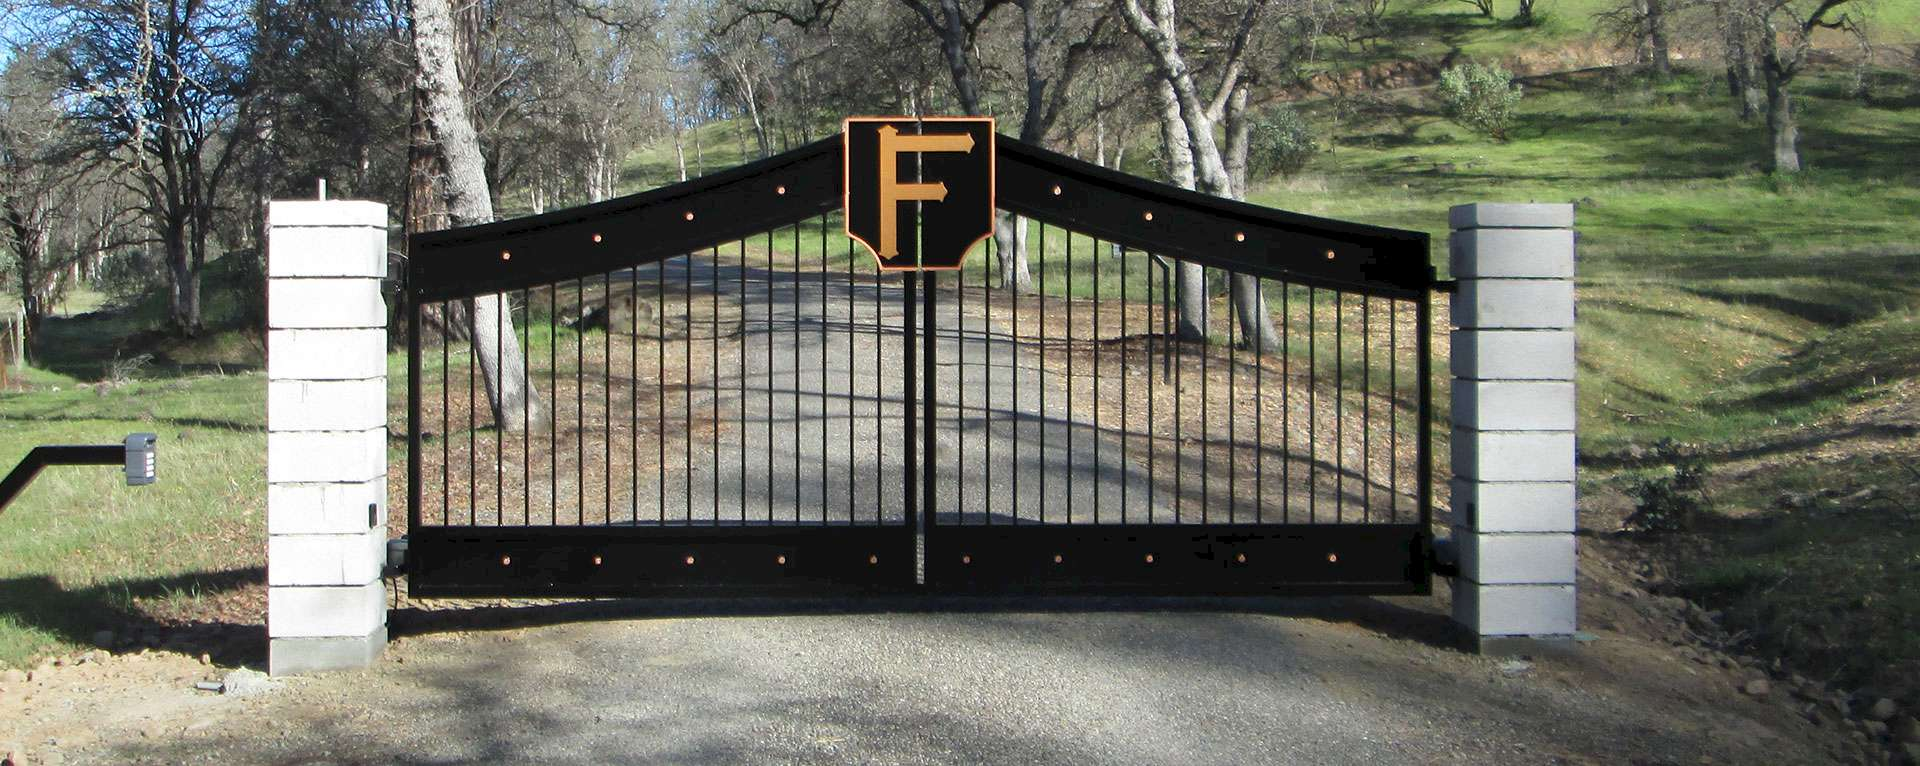 We Are Available For Any Construction Work | Signature Gates & Controls